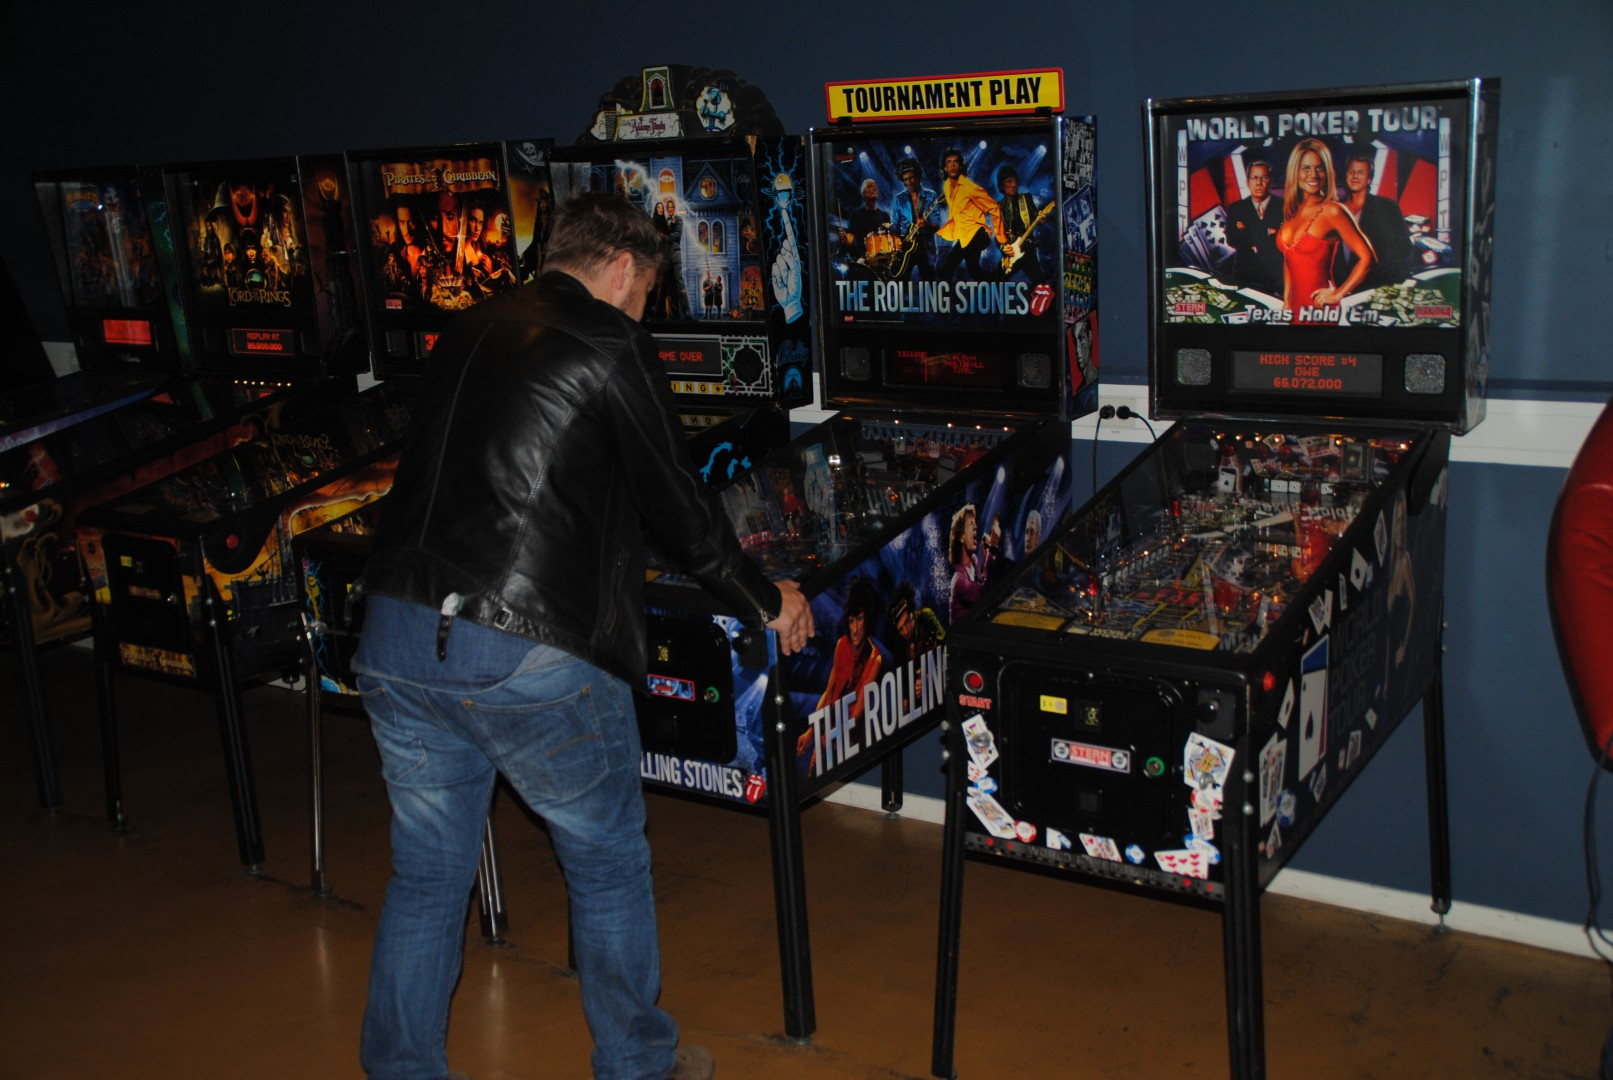 The Rolling Stones and World Poker Tour Pinball games / At Liseberg Fun Fair